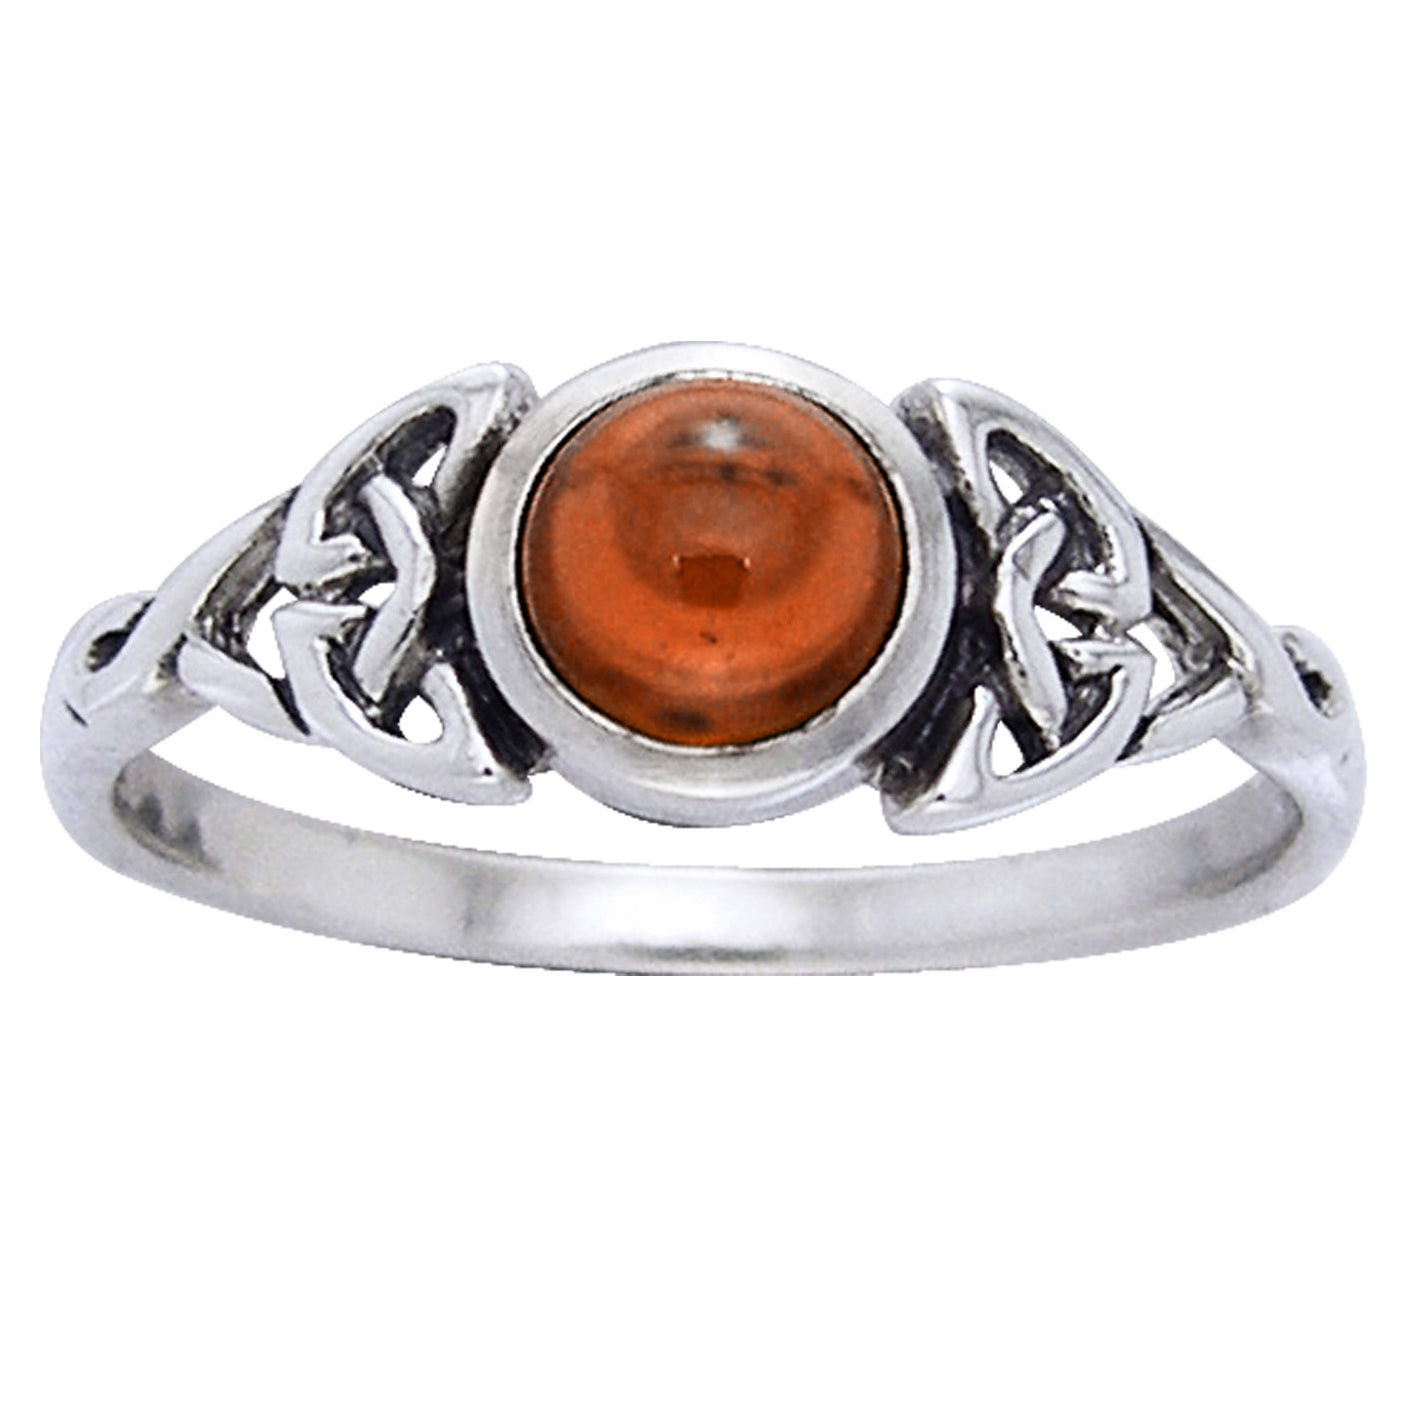 Simulated Amber Celtic Knot Ring with Round Gemstone Sterling Silver - Silver Insanity